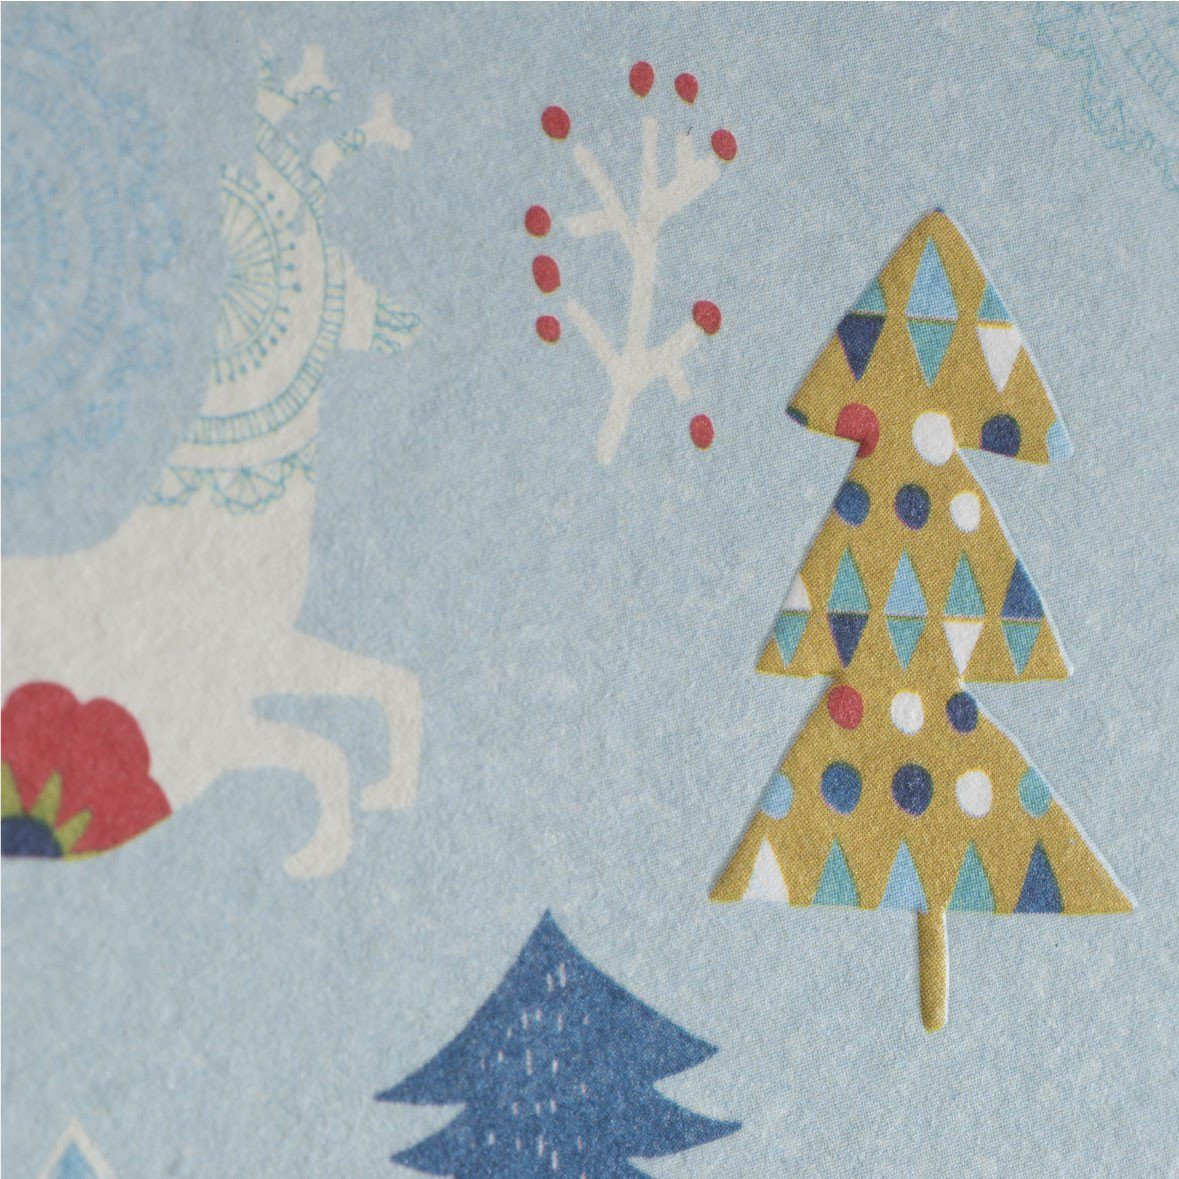 Let It Snow Greeting Card - Christmas Cards - MULTIFOLIA ATELIER di Rita Girola - Naiise